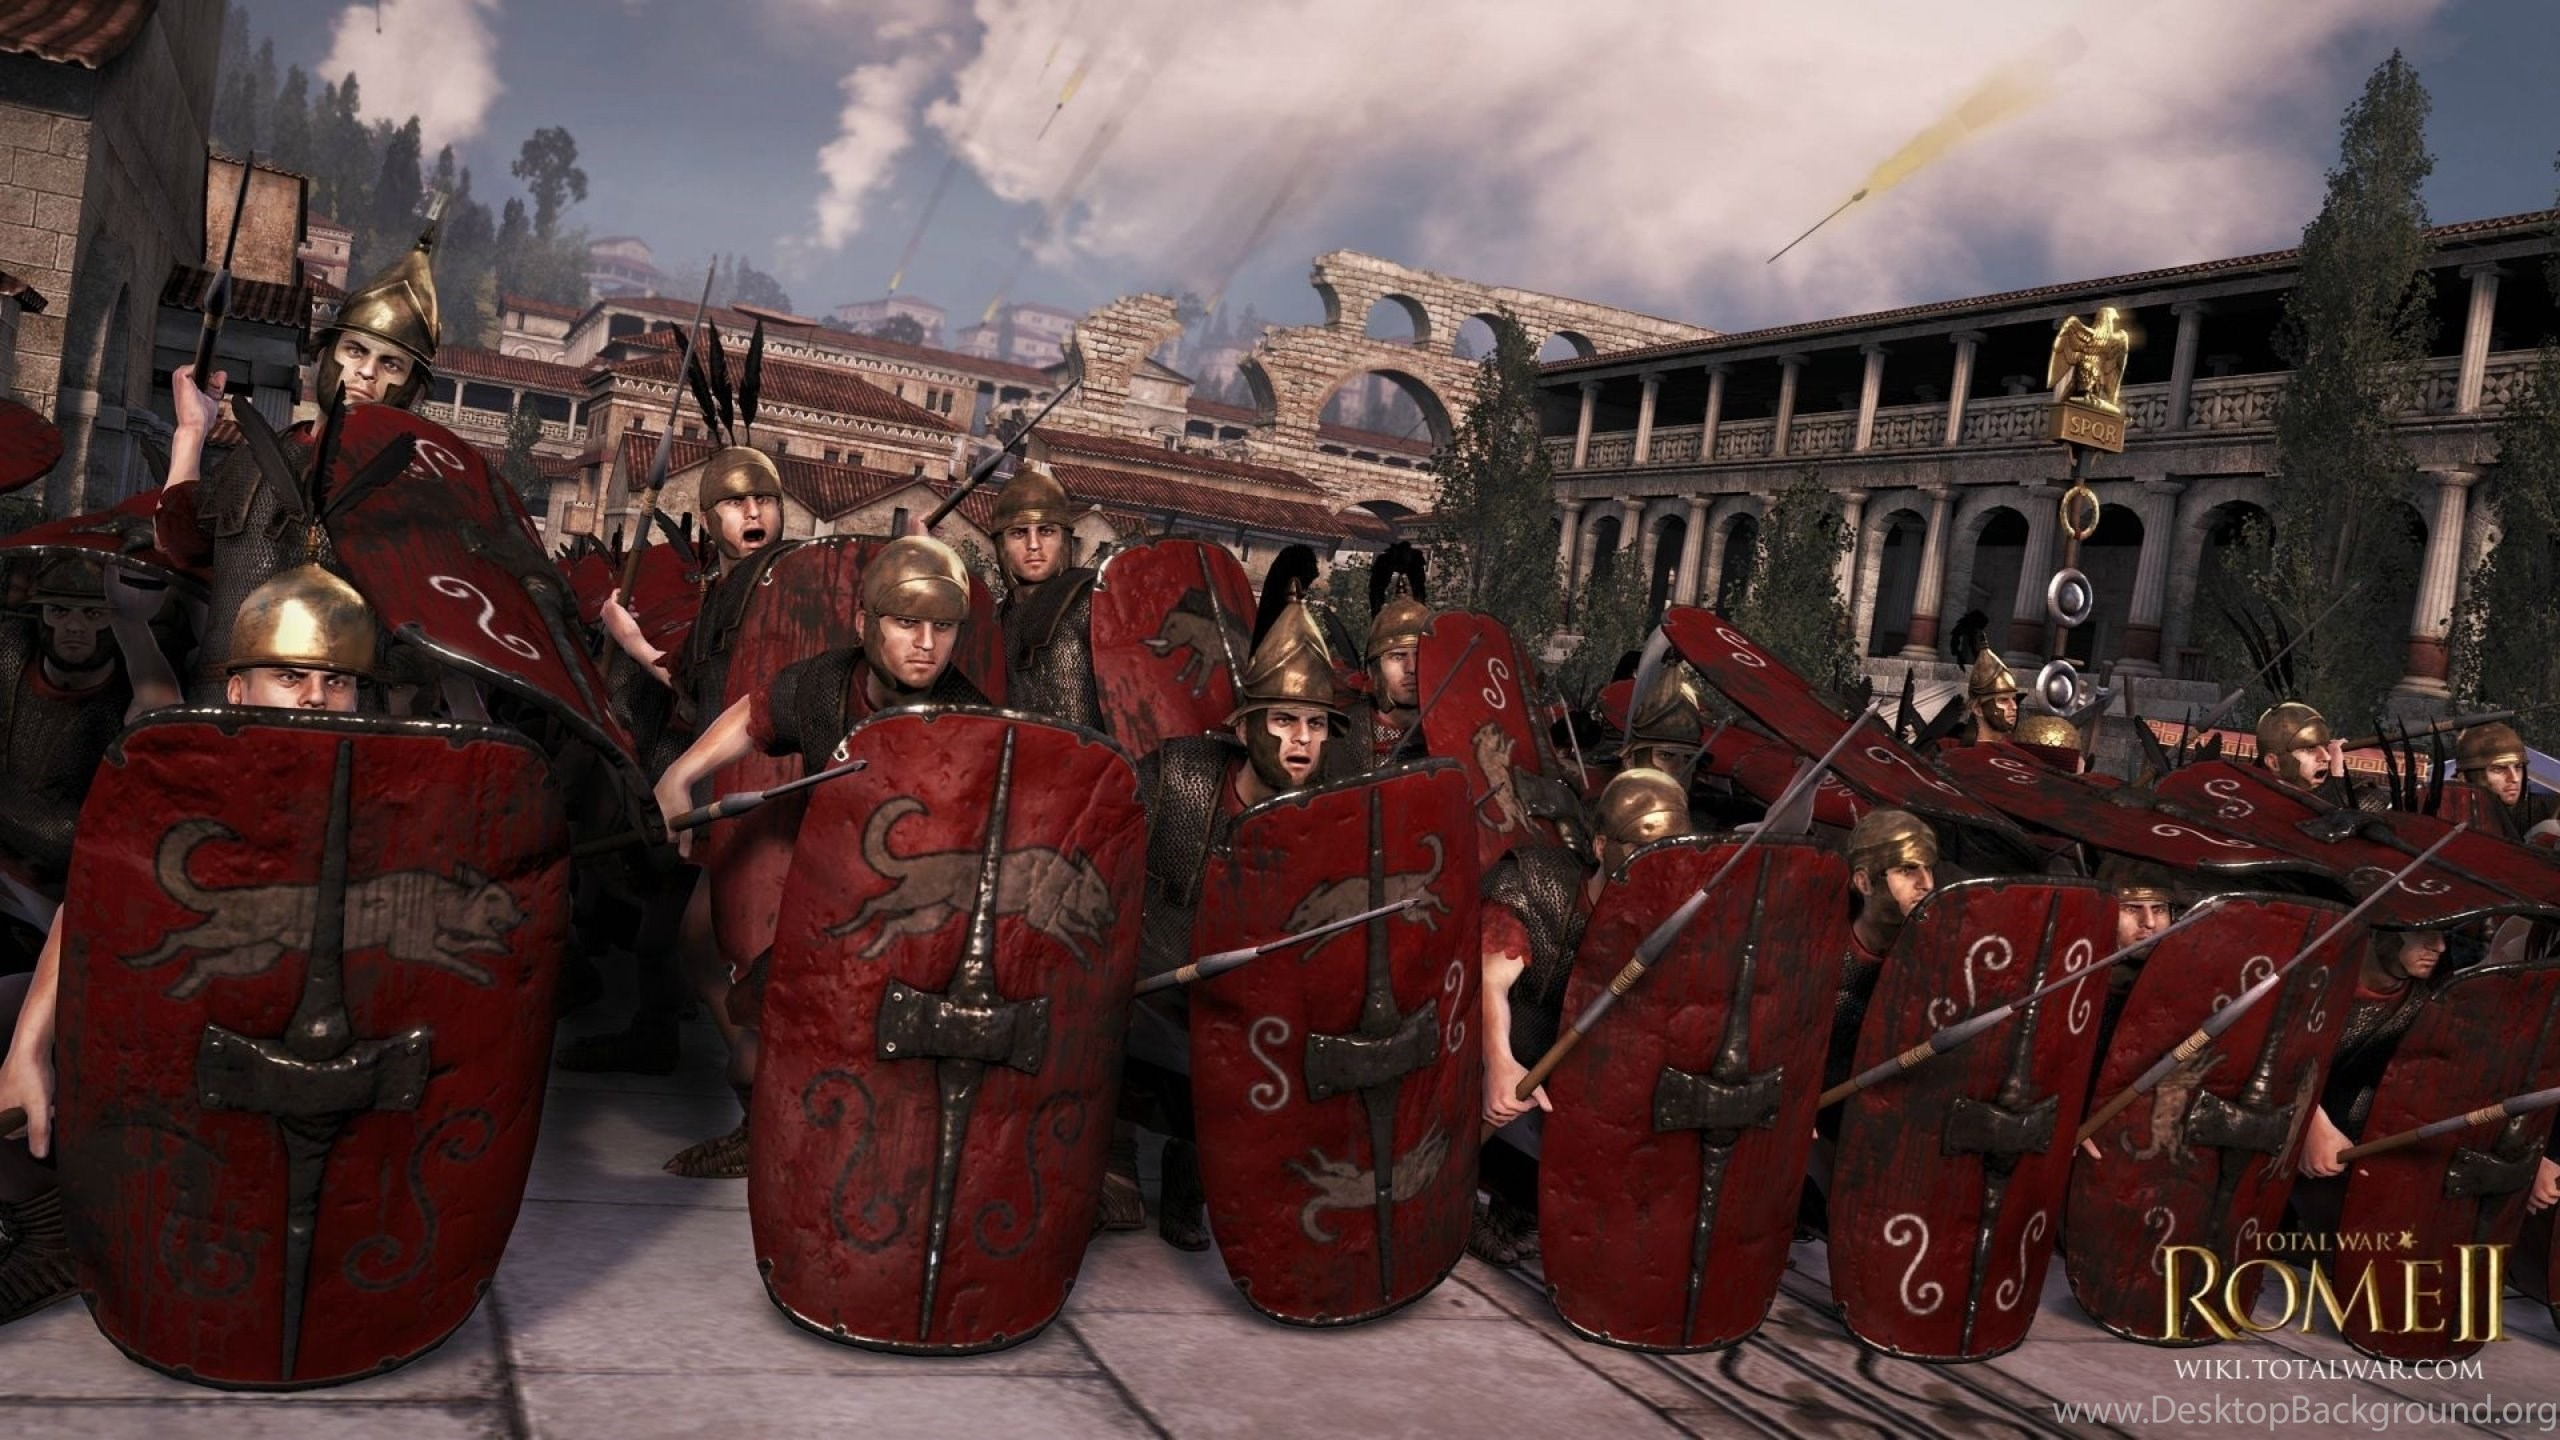 Download Wallpapers Download 2560x1440 Total War Rome 2 1920x1080